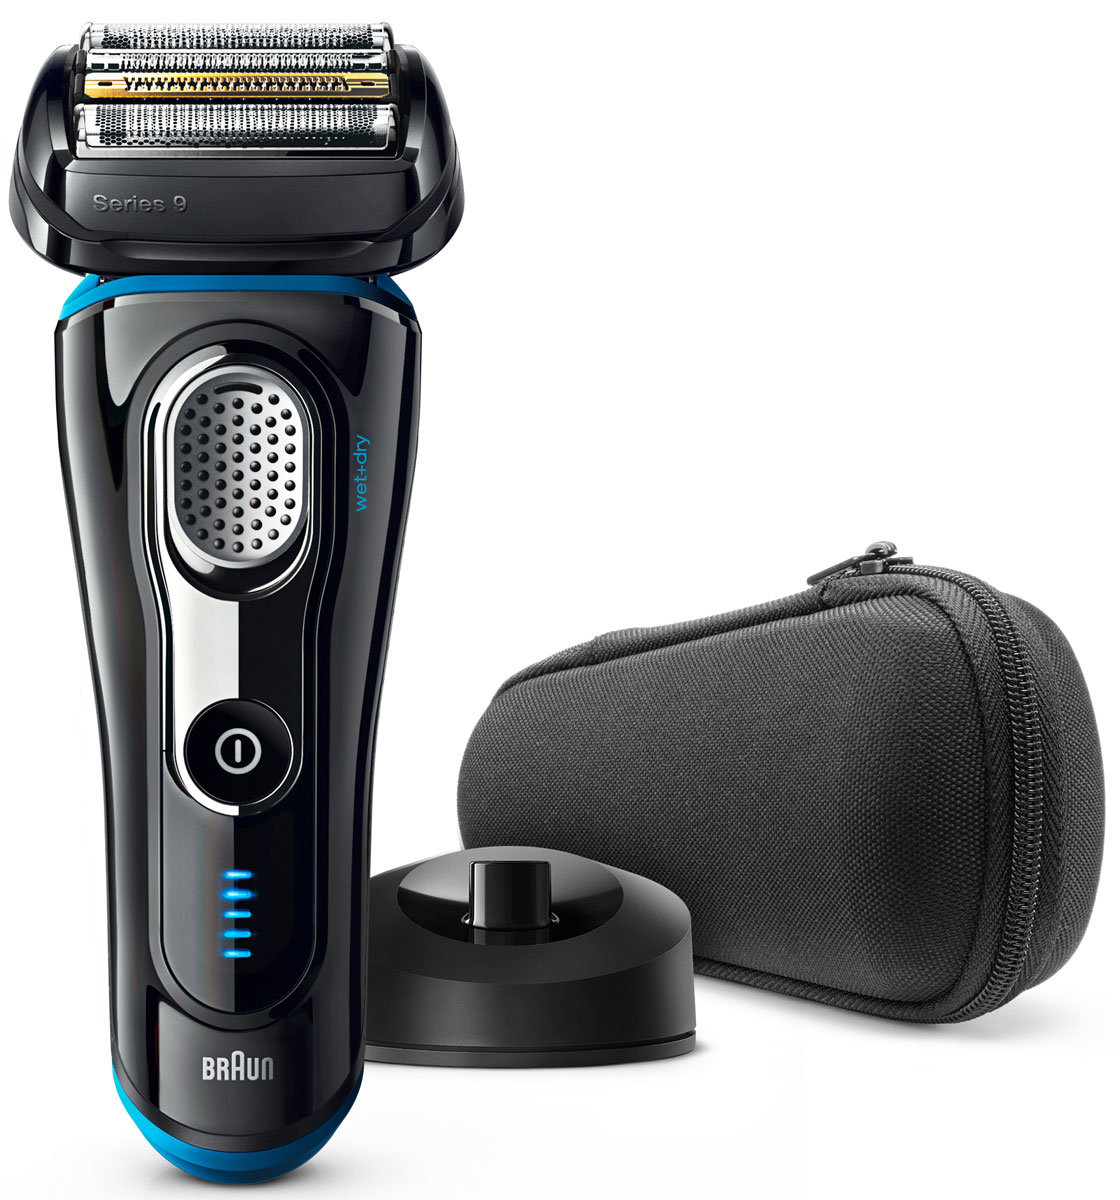 Braun Series 9 9240s Wet&Dry, Black электробритва